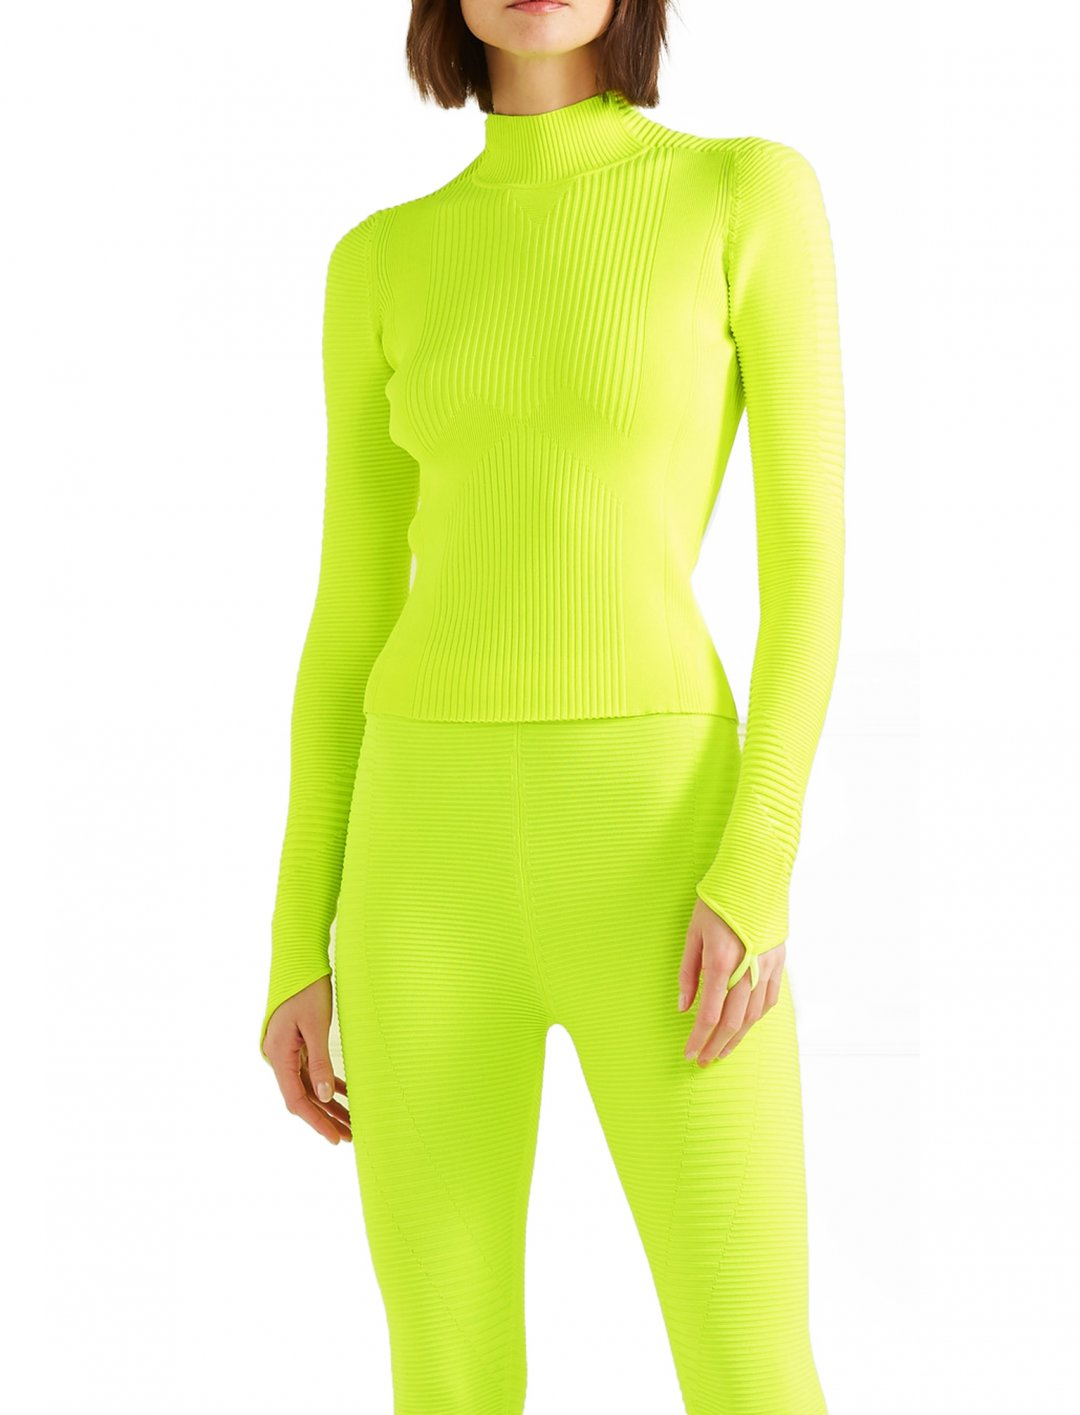 "Turtleneck Top In Neon {""id"":5,""product_section_id"":1,""name"":""Clothing"",""order"":5} Adam Selman Sport"